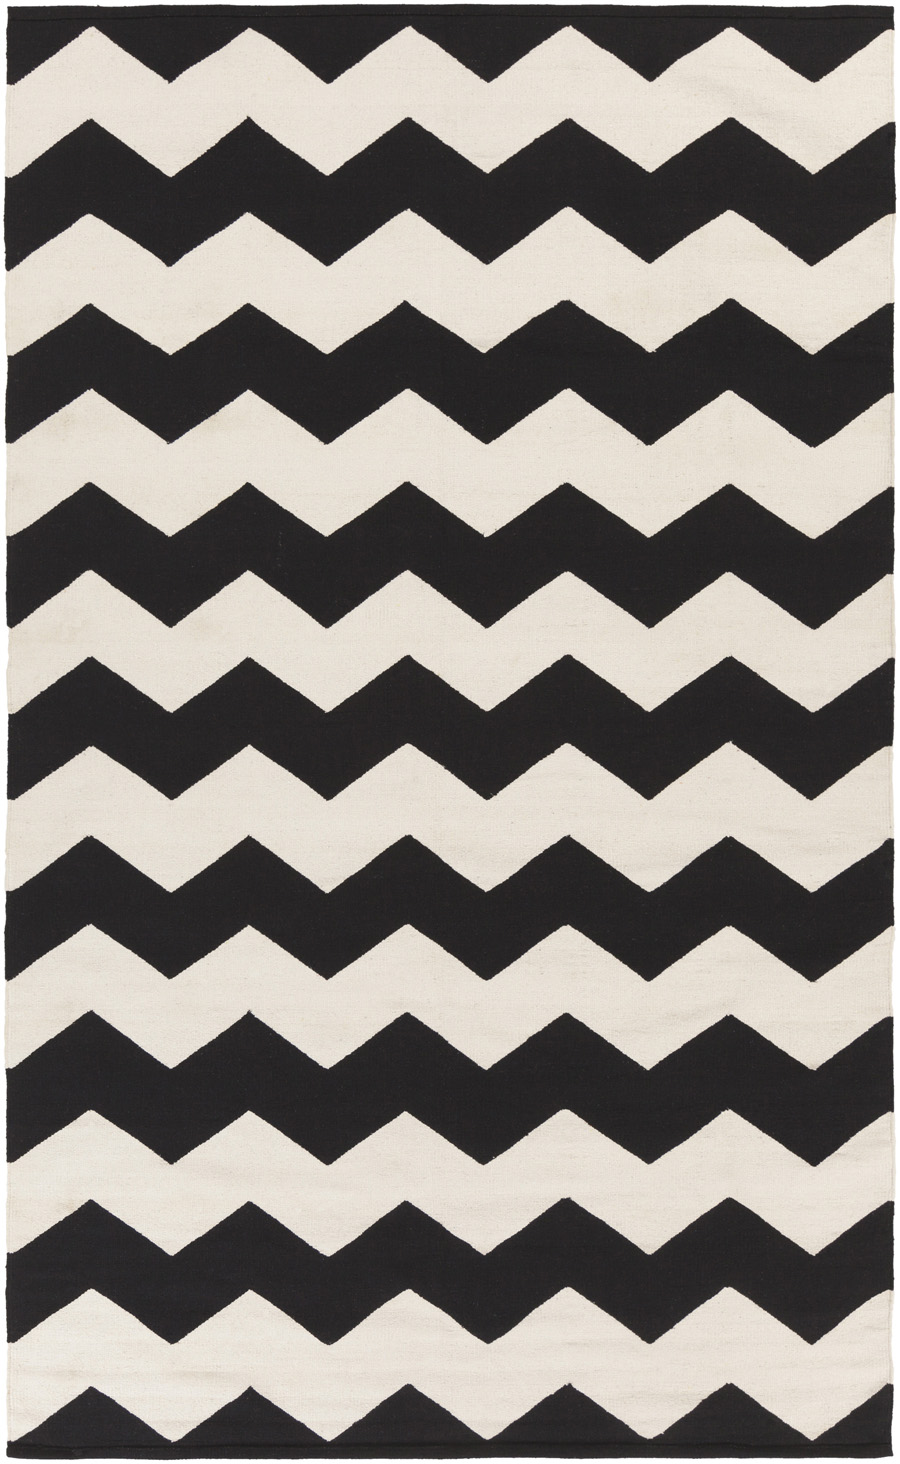 Artistic Weavers Vogue Collins AWLT3016 Black/White Area Rug